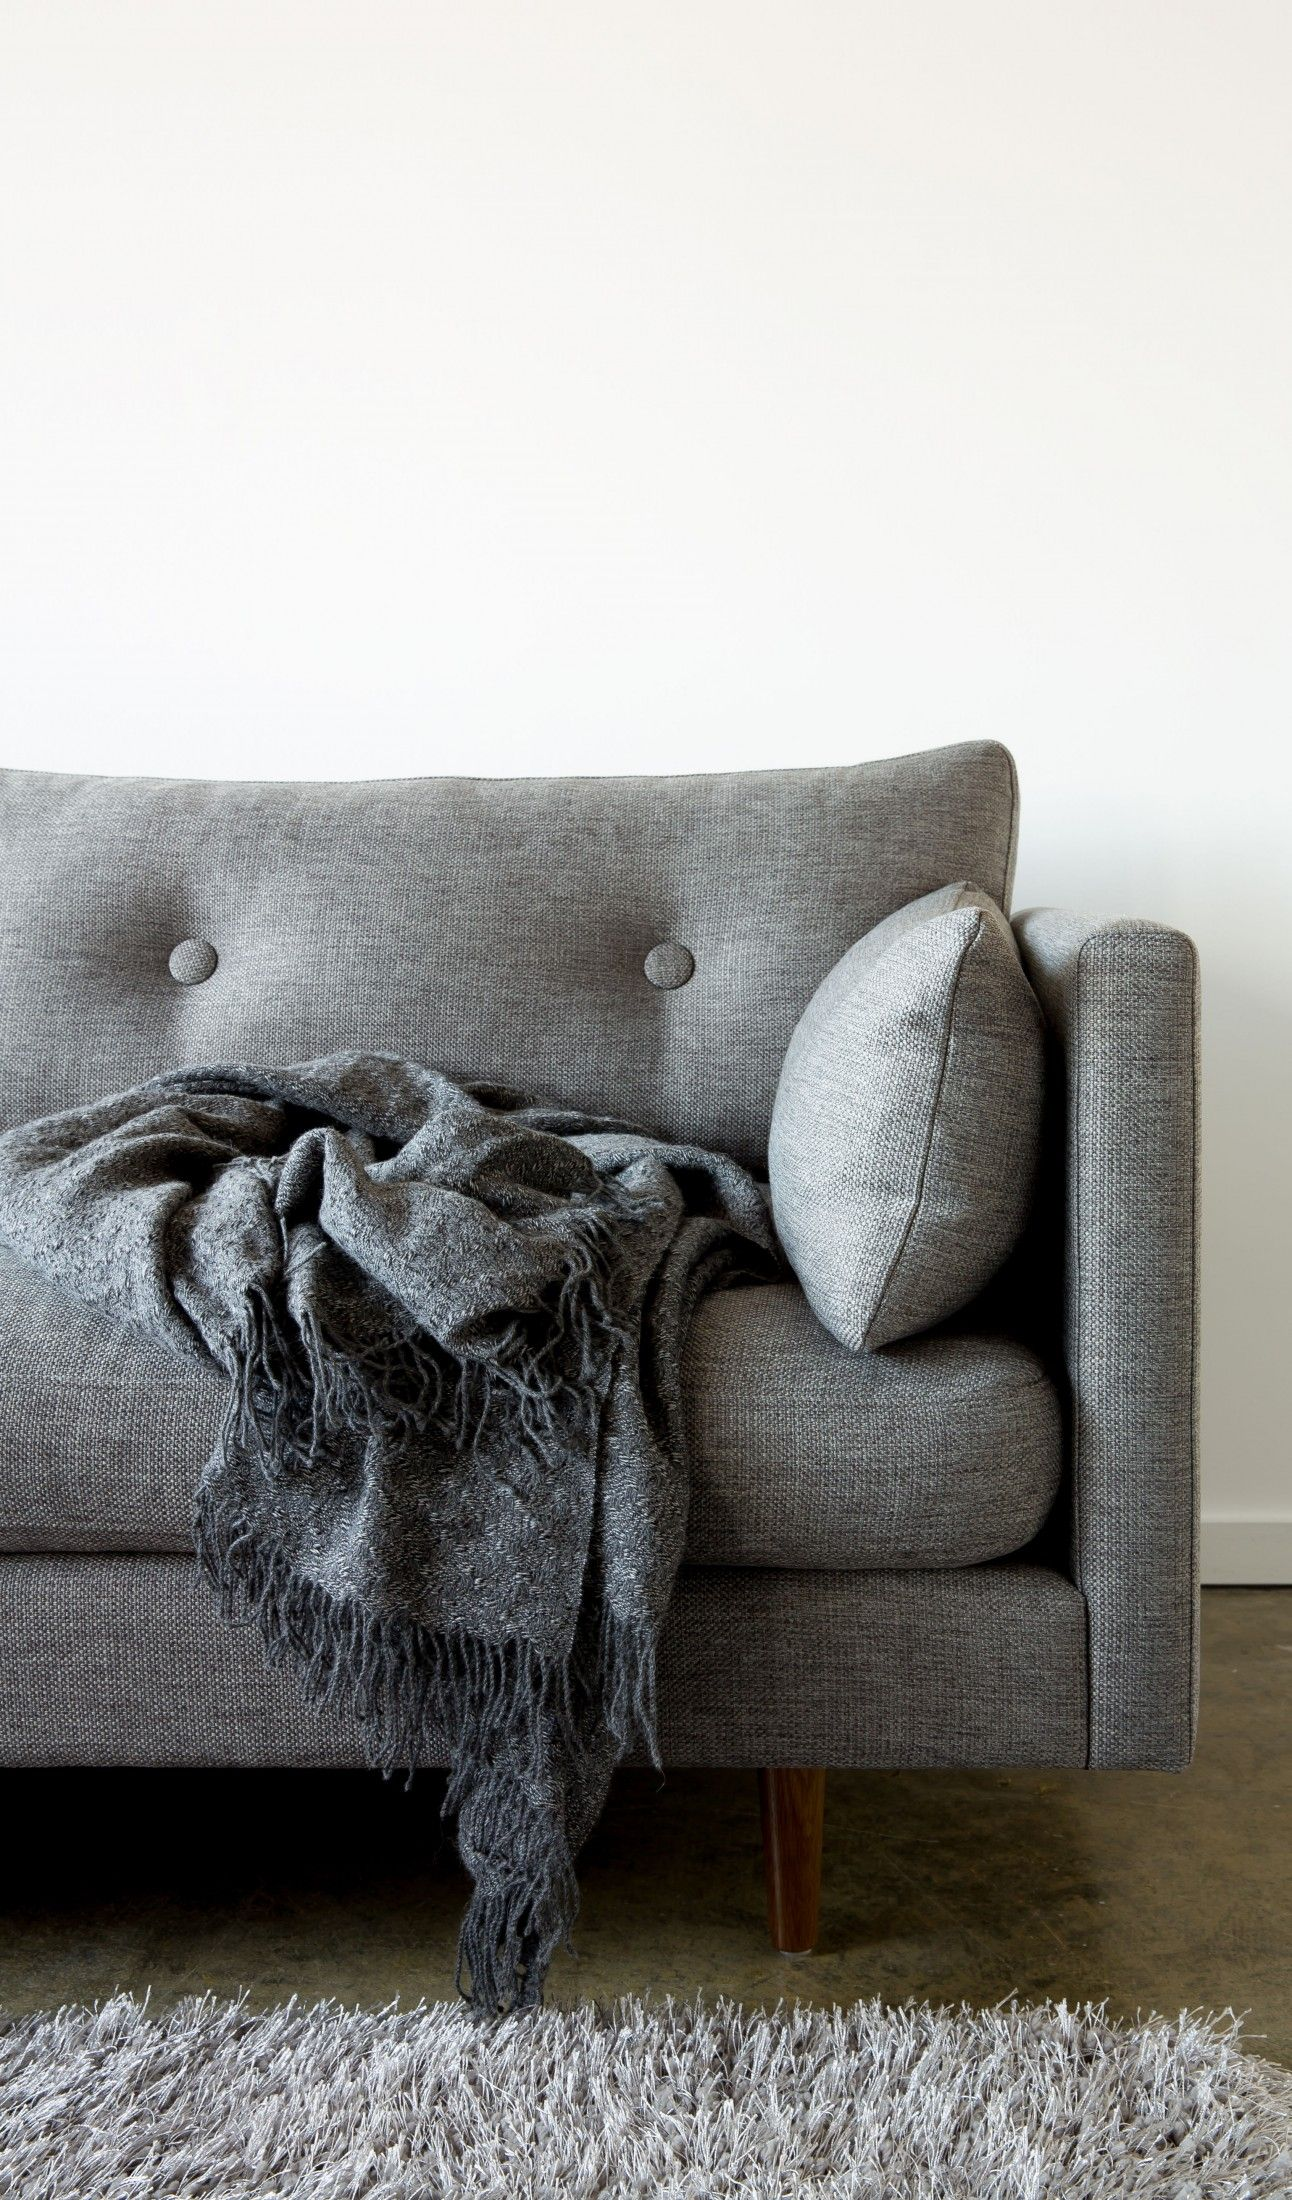 Astounding Gray Sofa Tufted Button Back Solid Wood Legs Article Theyellowbook Wood Chair Design Ideas Theyellowbookinfo